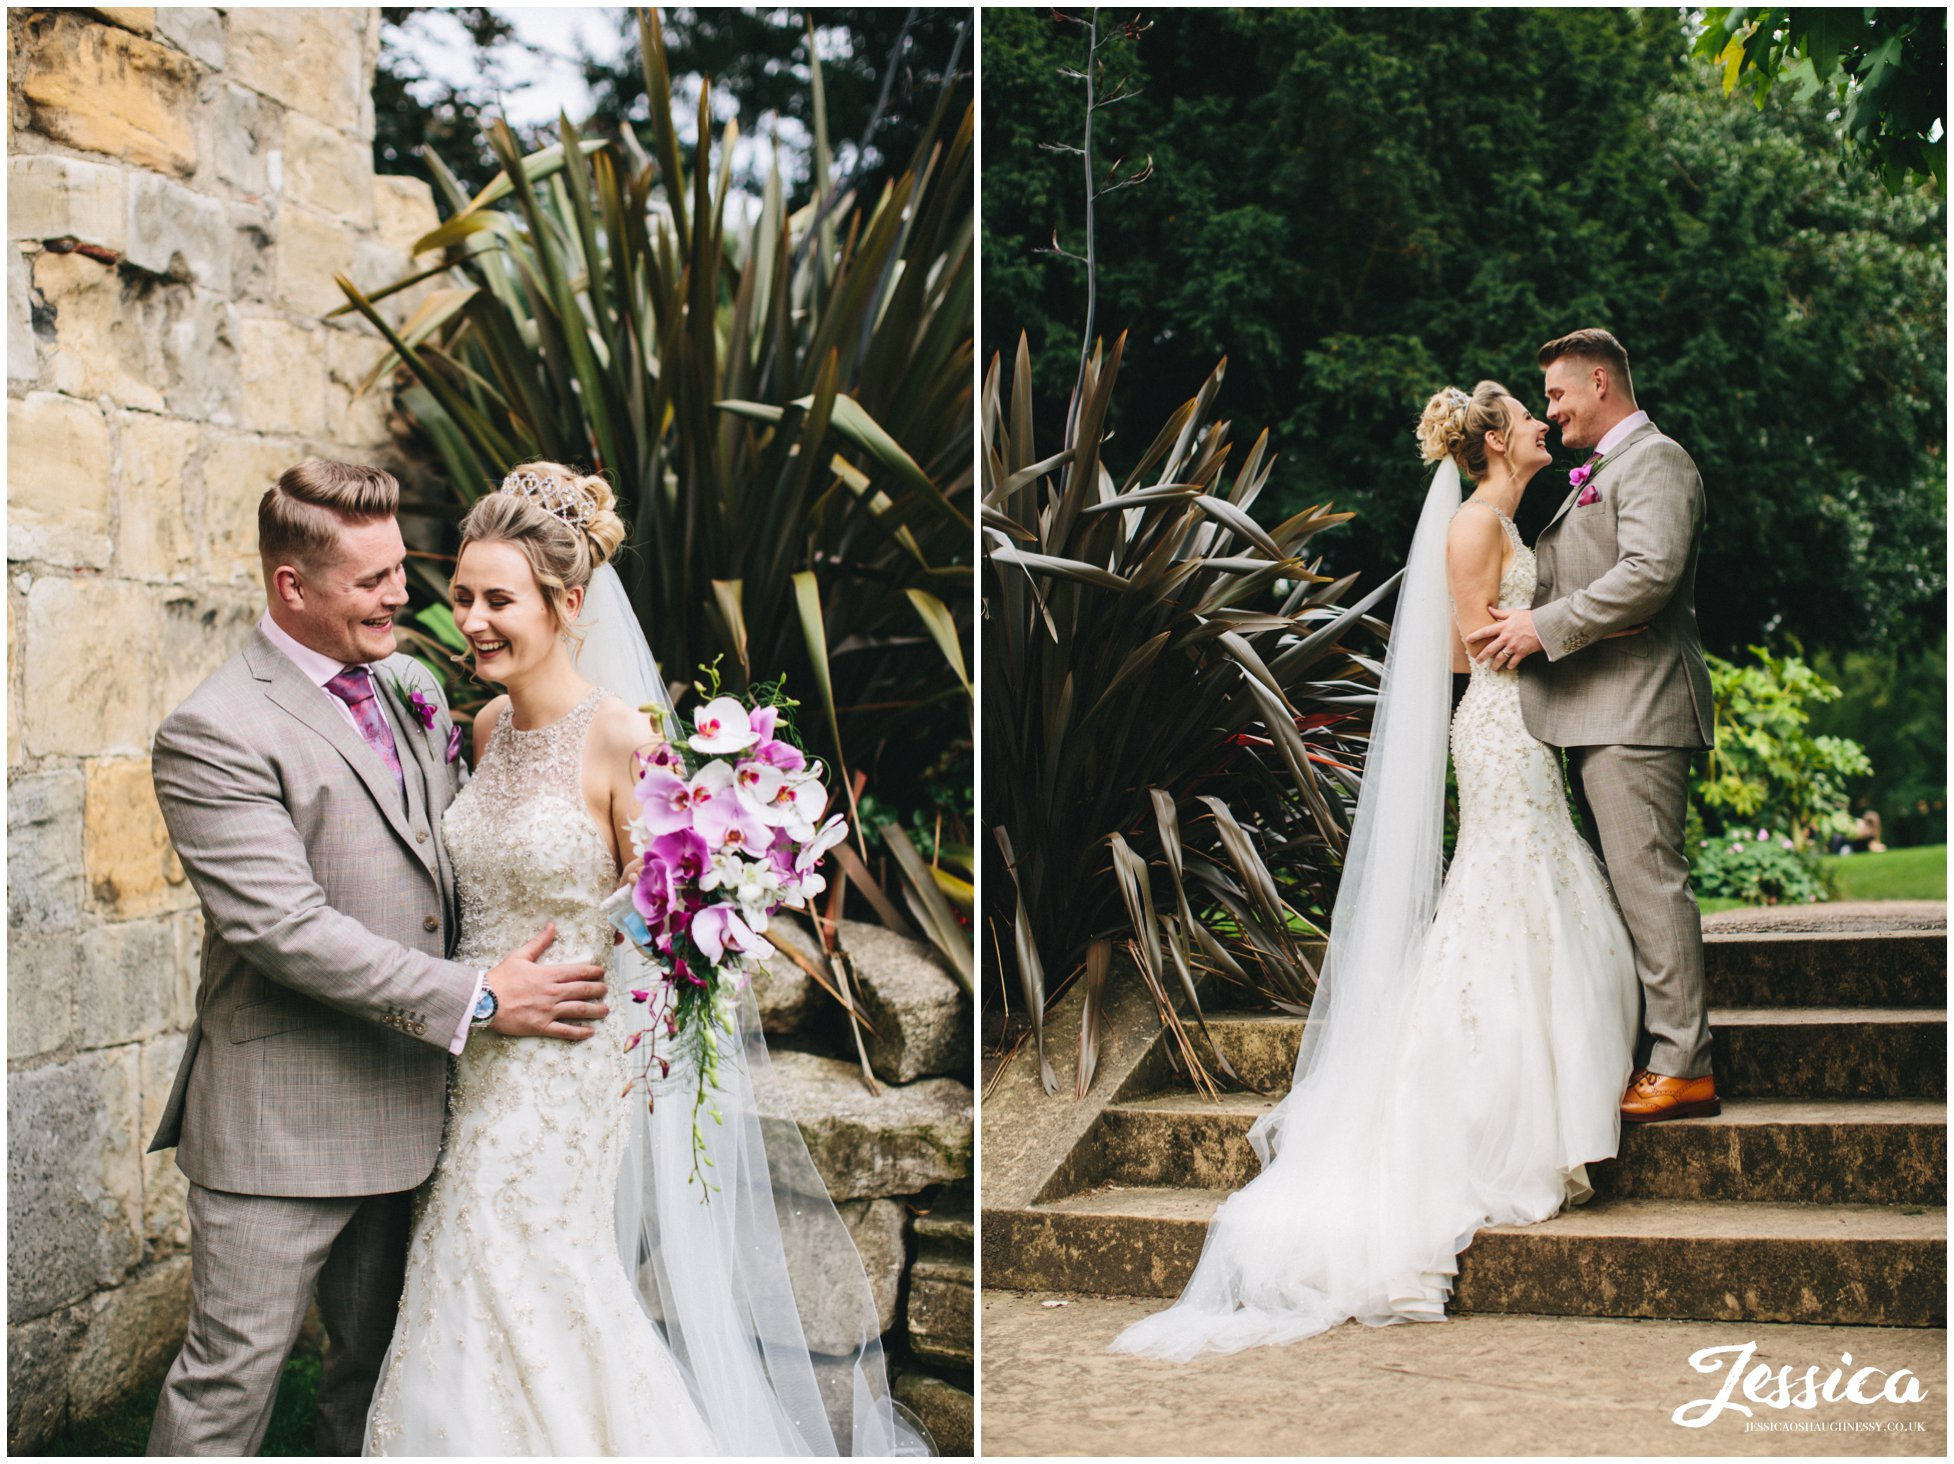 newly wed's embrace in celebration at the hospitium in york